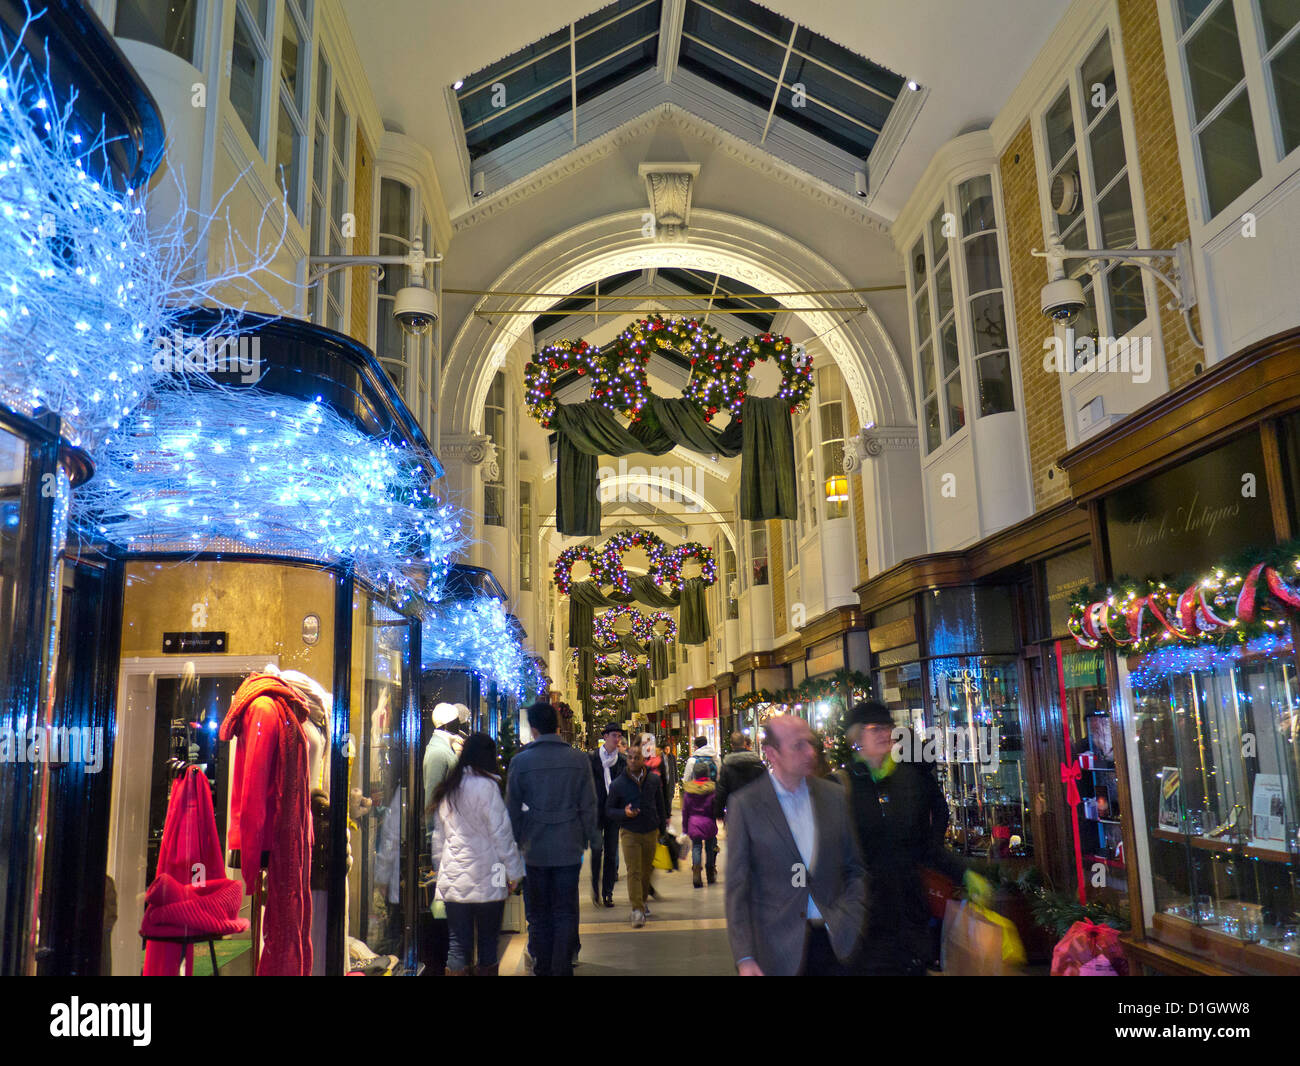 Burlington Arcade in Piccadilly with traditional Christmas decorations and shoppers with shopping bags London UK - Stock Image